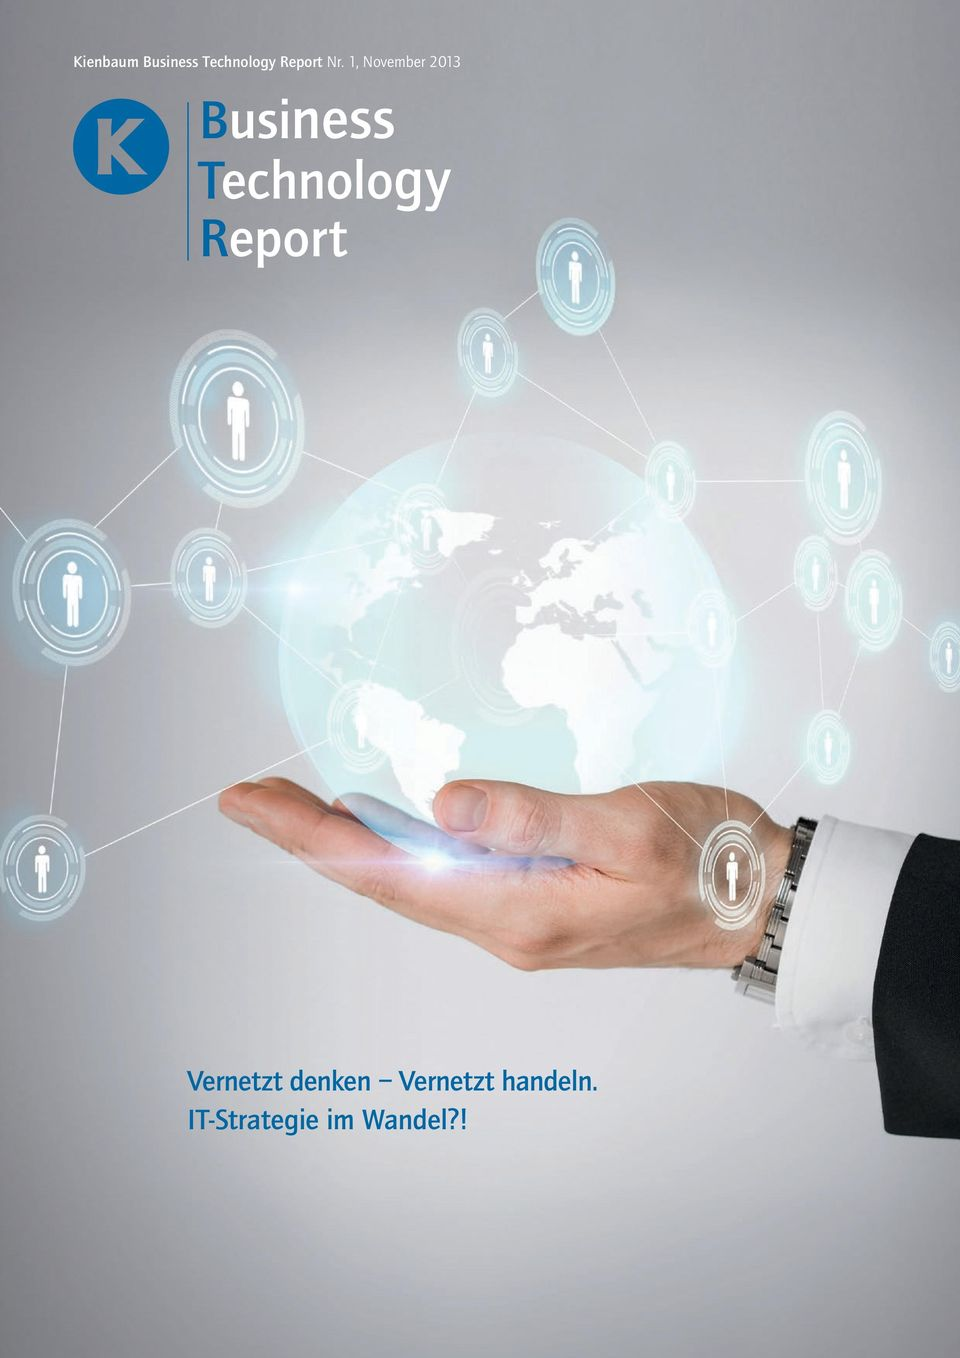 Technology Report Thema Vernetzt